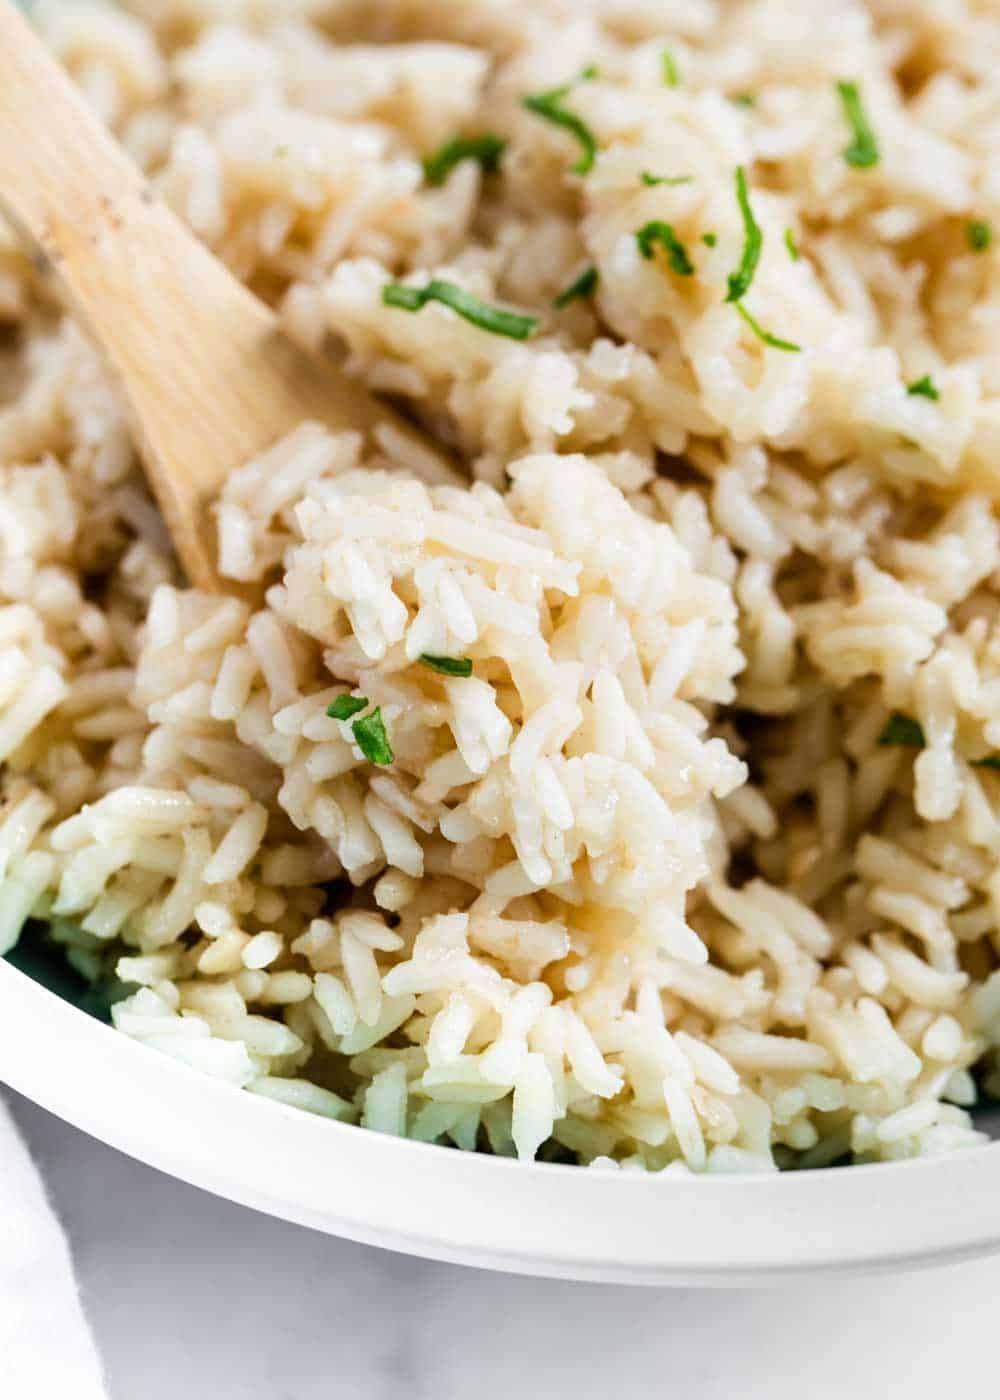 Rice Pilaf #easyricepilaf EASY Rice Pilaf (made in one pan!) - I Heart Naptime #easyricepilaf Rice Pilaf #easyricepilaf EASY Rice Pilaf (made in one pan!) - I Heart Naptime #easyricepilaf